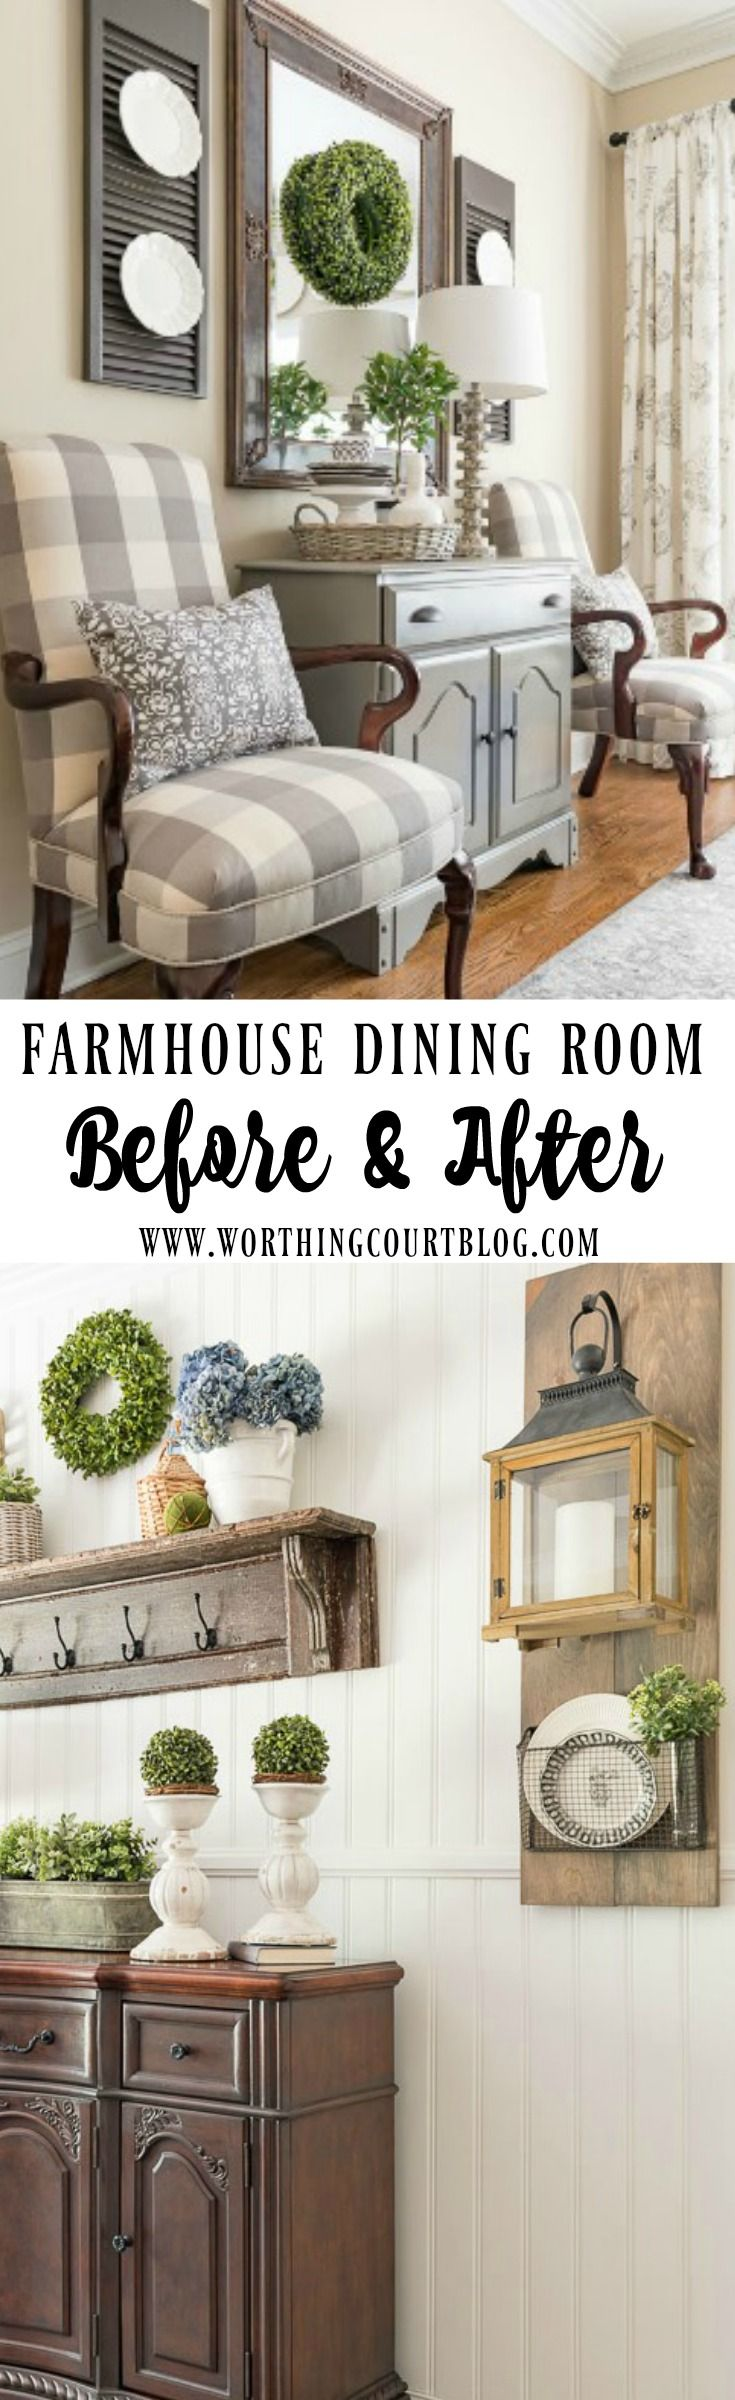 best 25+ farmhouse dining rooms ideas on pinterest | farmhouse